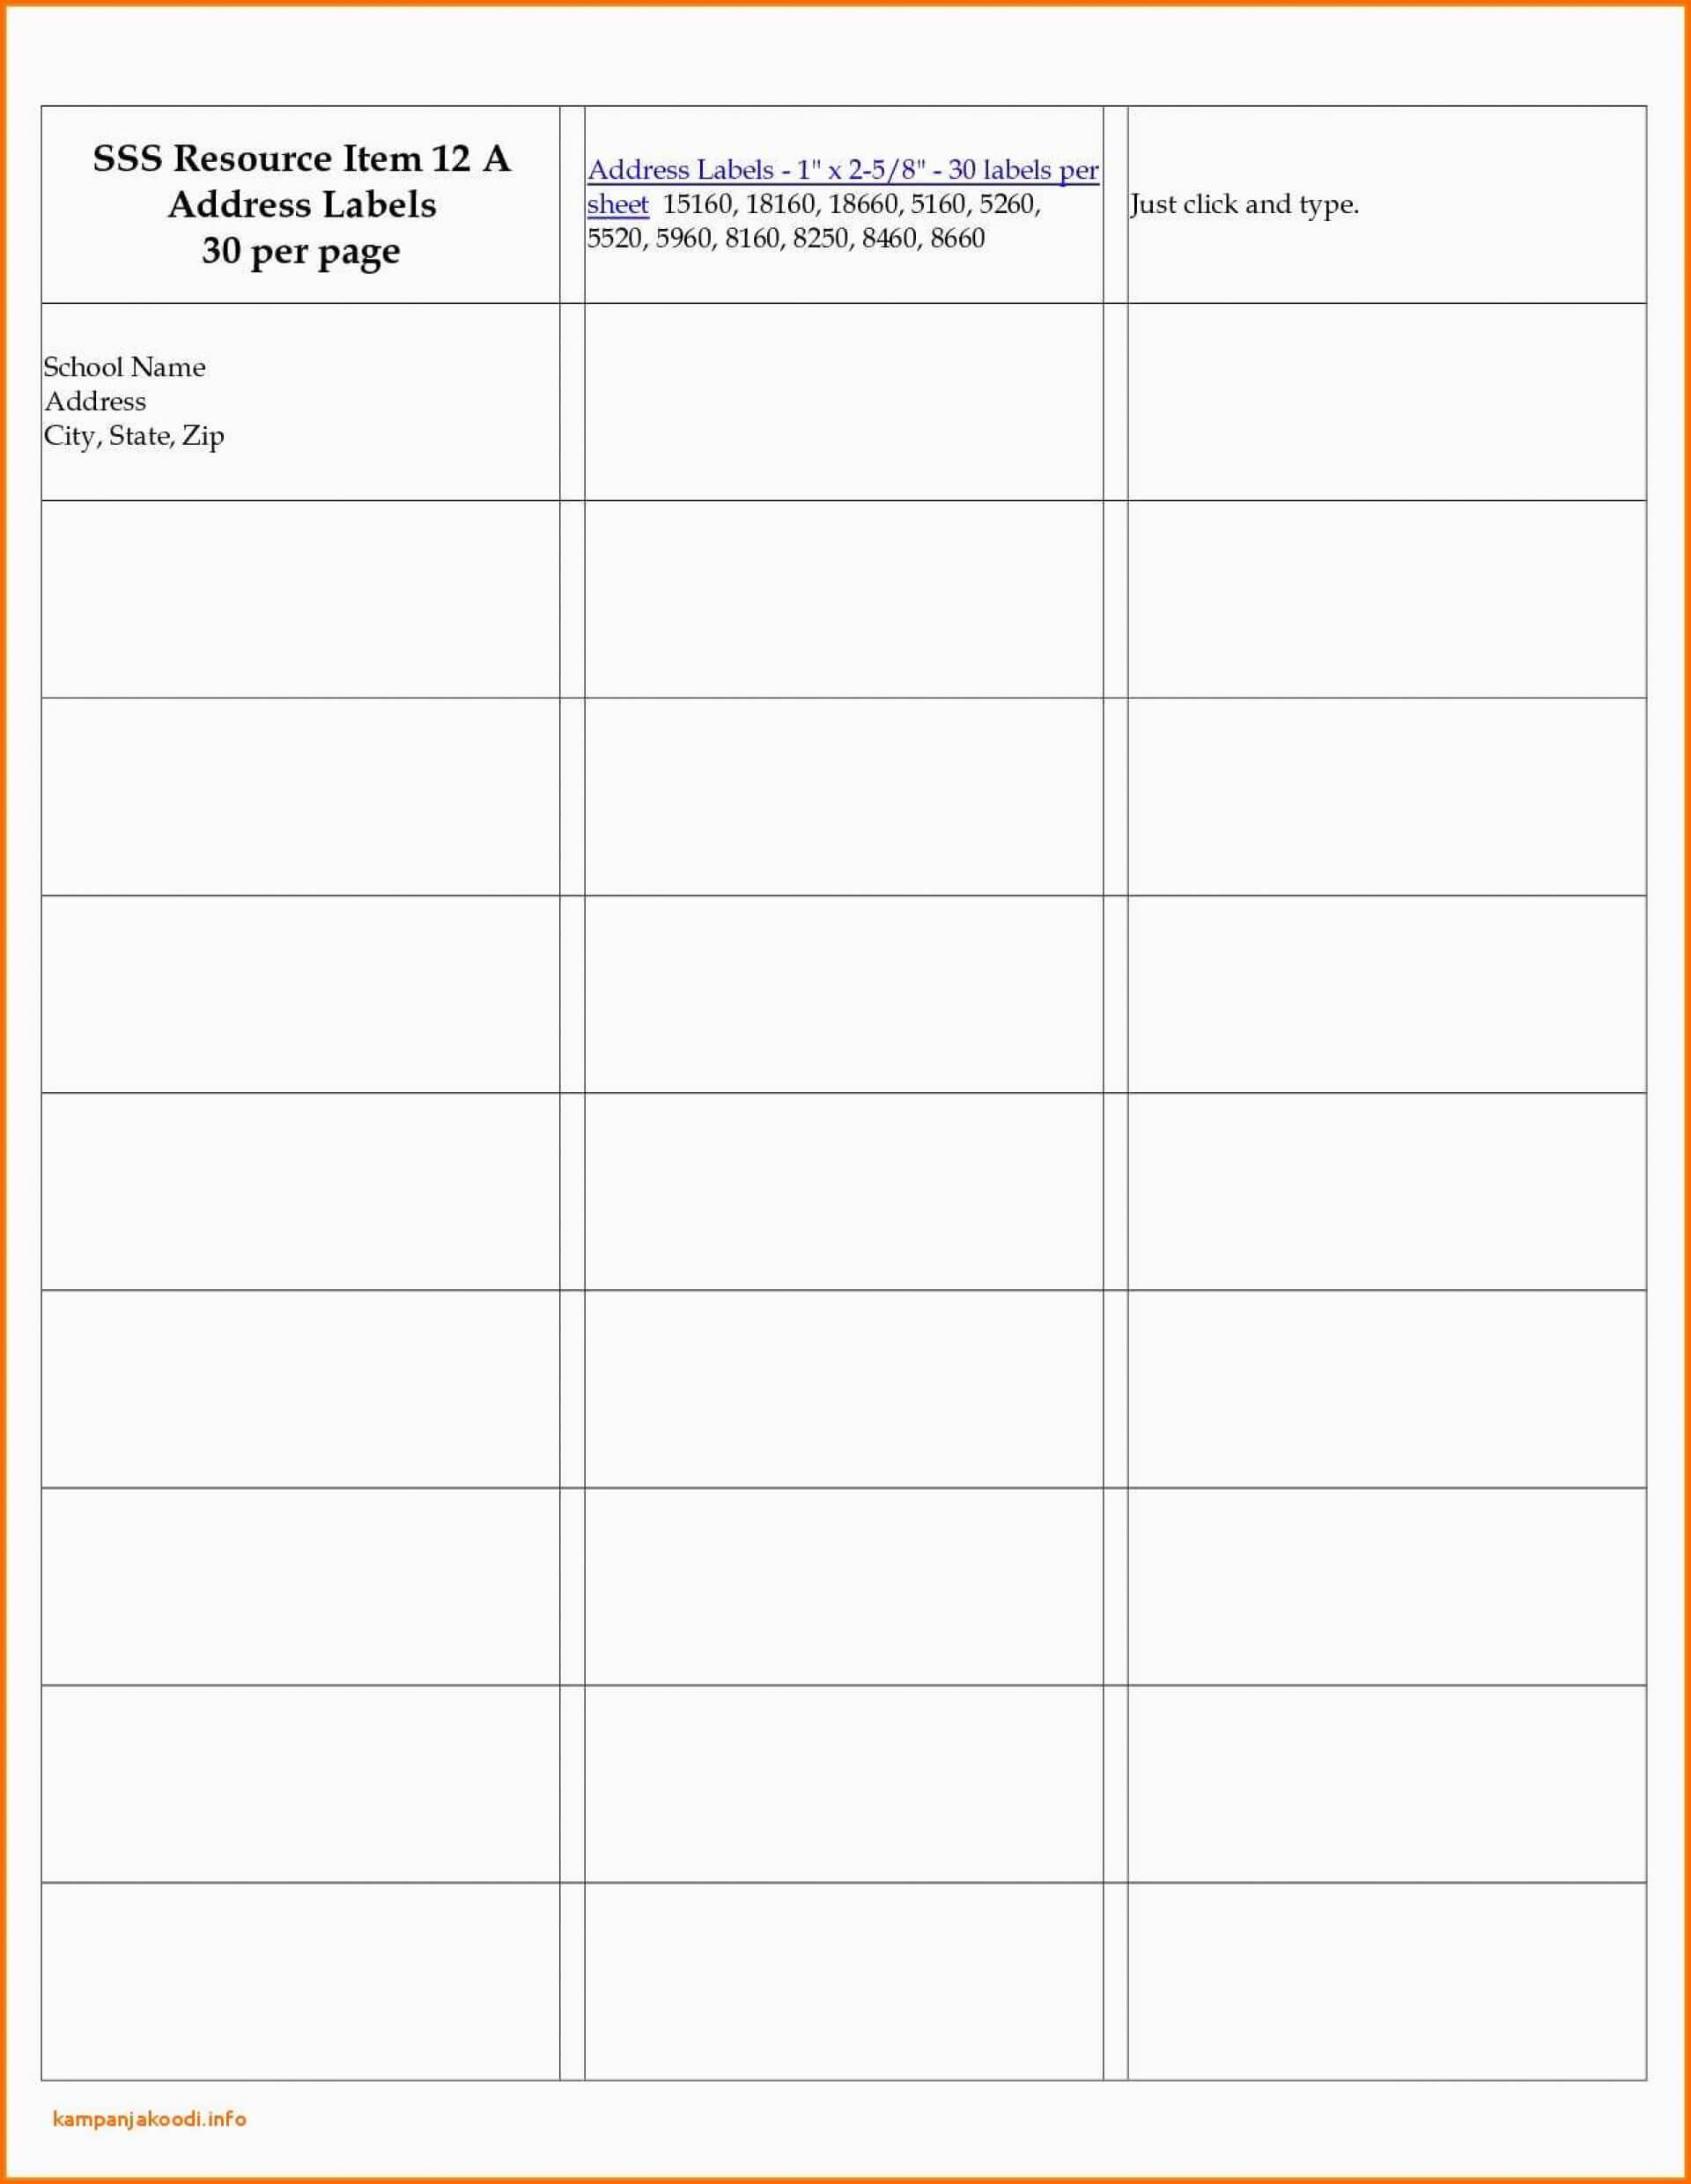 004 Label Templates For Word Per Sheet Avery Labels Template For 30 Labels Per Sheet Template